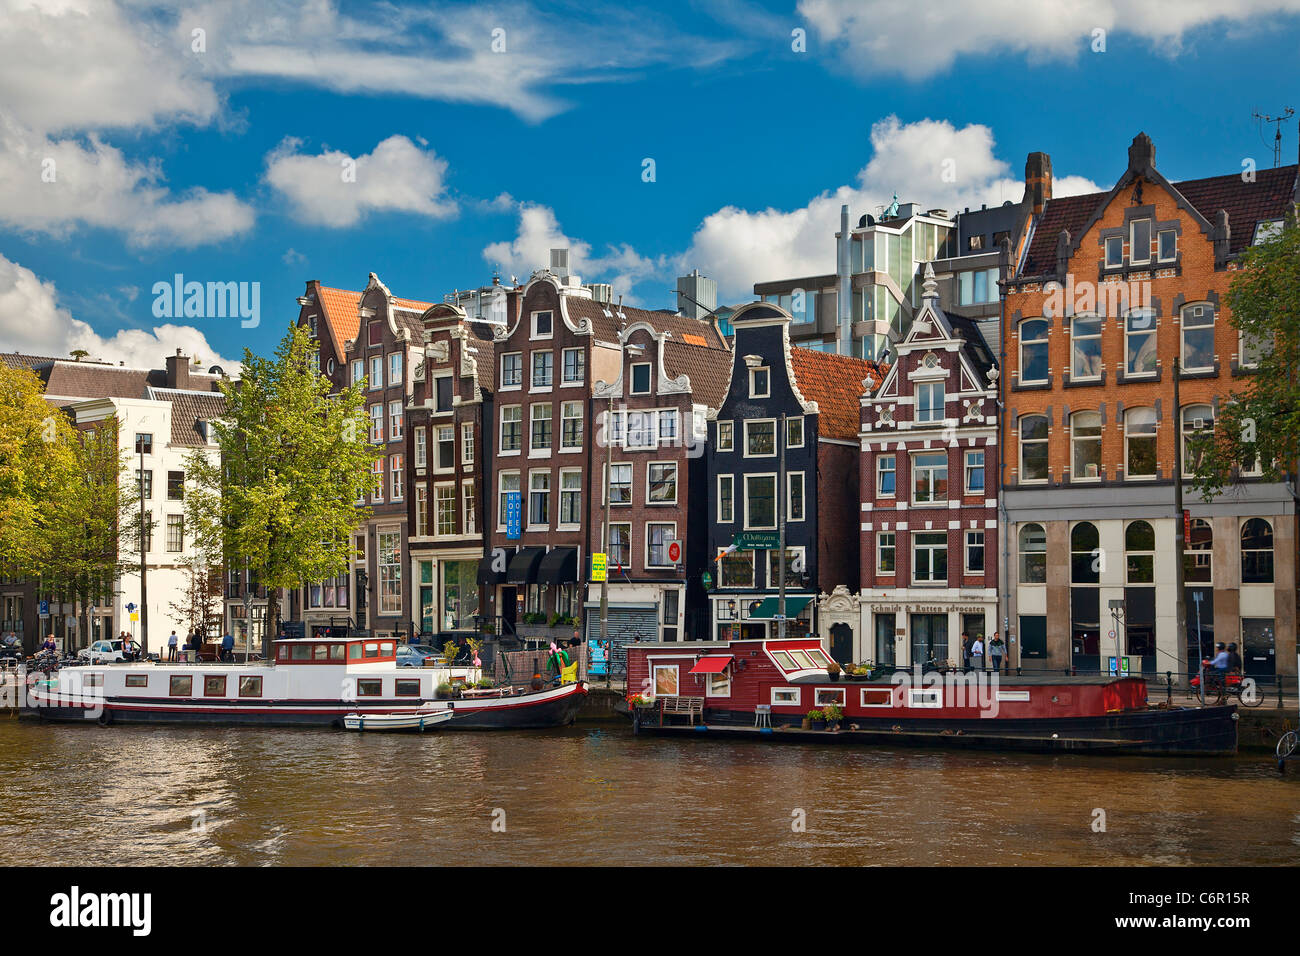 L'Europe, Pays-Bas, Canal à Amsterdam Photo Stock